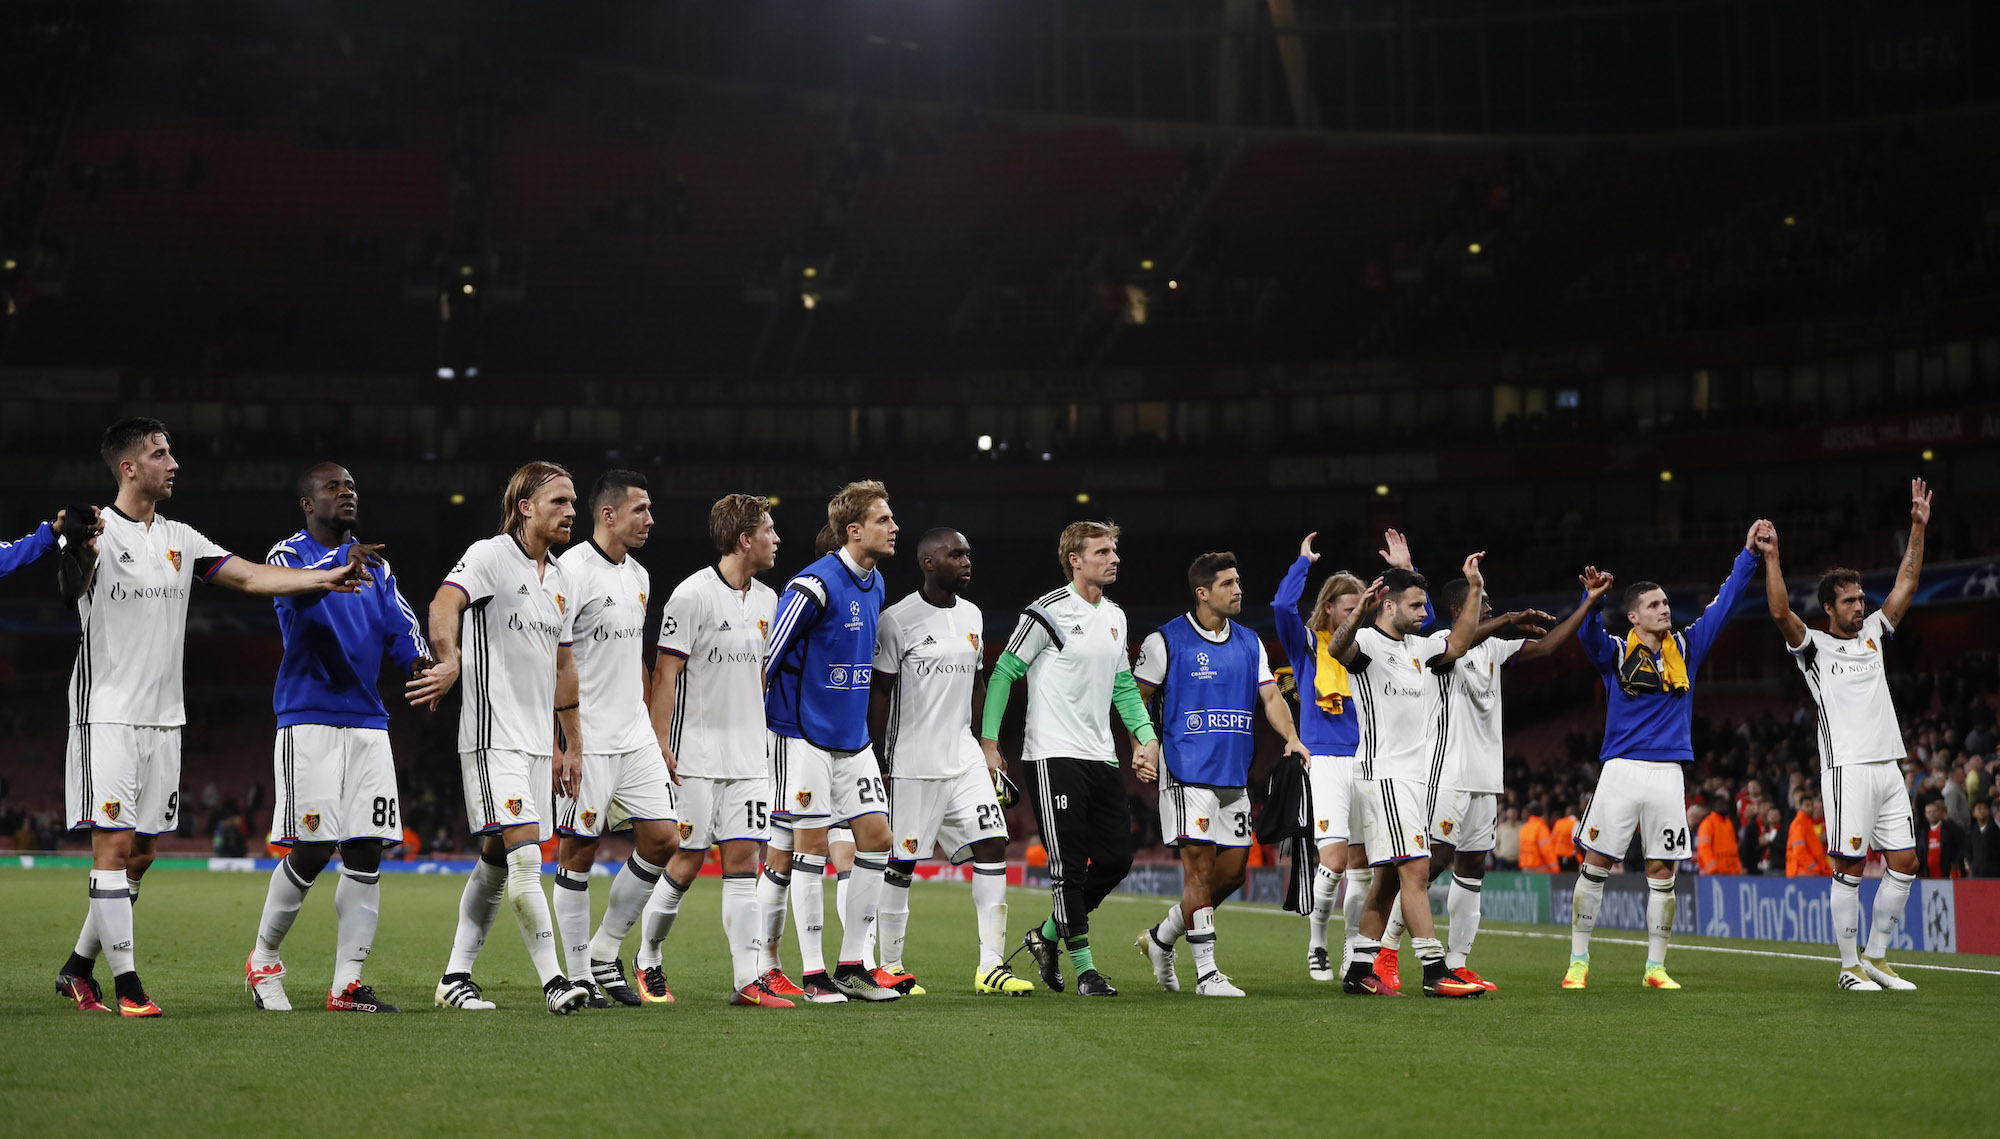 Britain Soccer Football - Arsenal v FC Basel - UEFA Champions League Group Stage - Group A - Emirates Stadium, London, England - 28/9/16 FC Basel players after the match Reuters / Stefan Wermuth Livepic EDITORIAL USE ONLY.